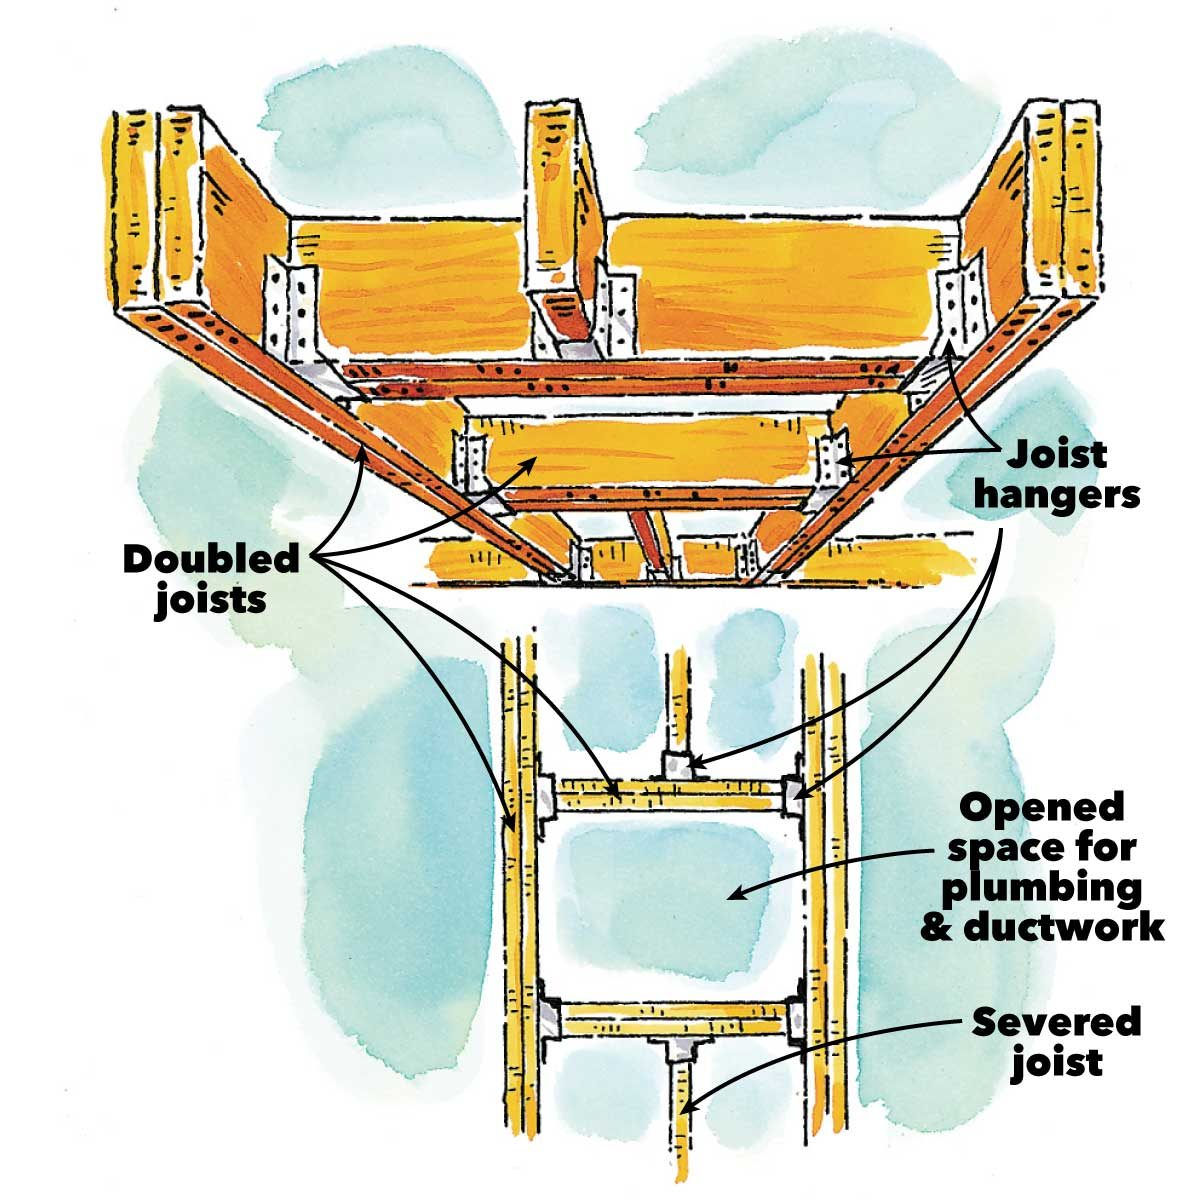 how joists work doubled joists